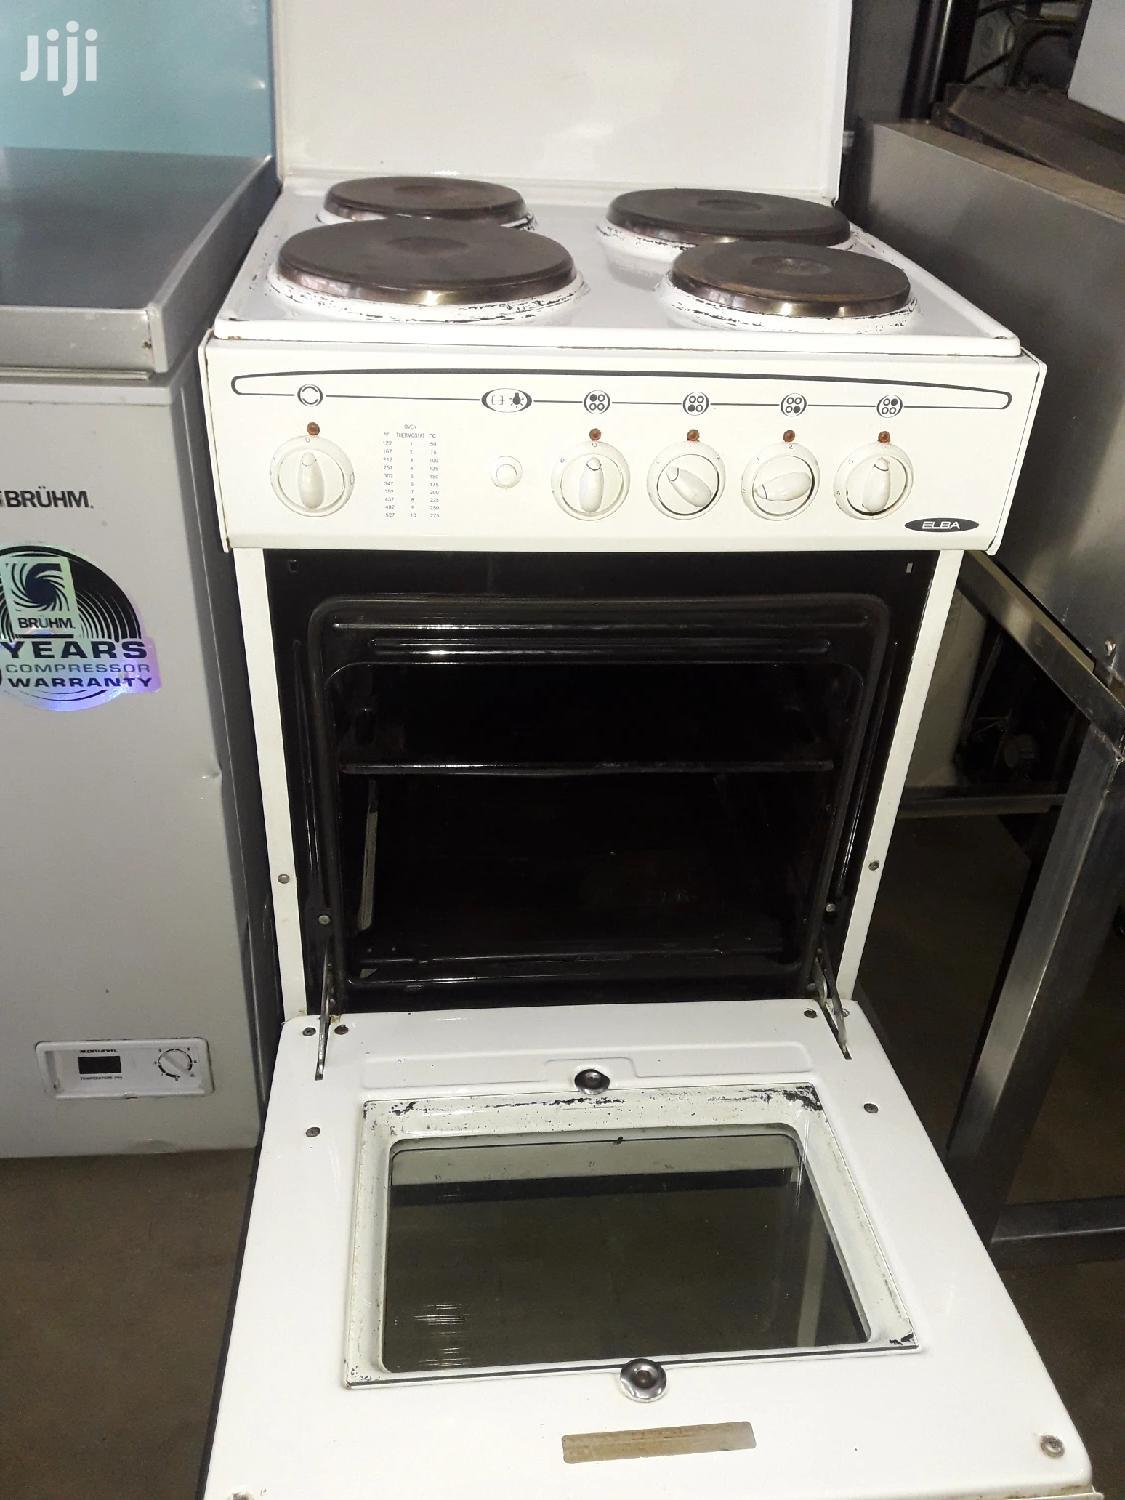 4 Plates Electric Cooker Oven